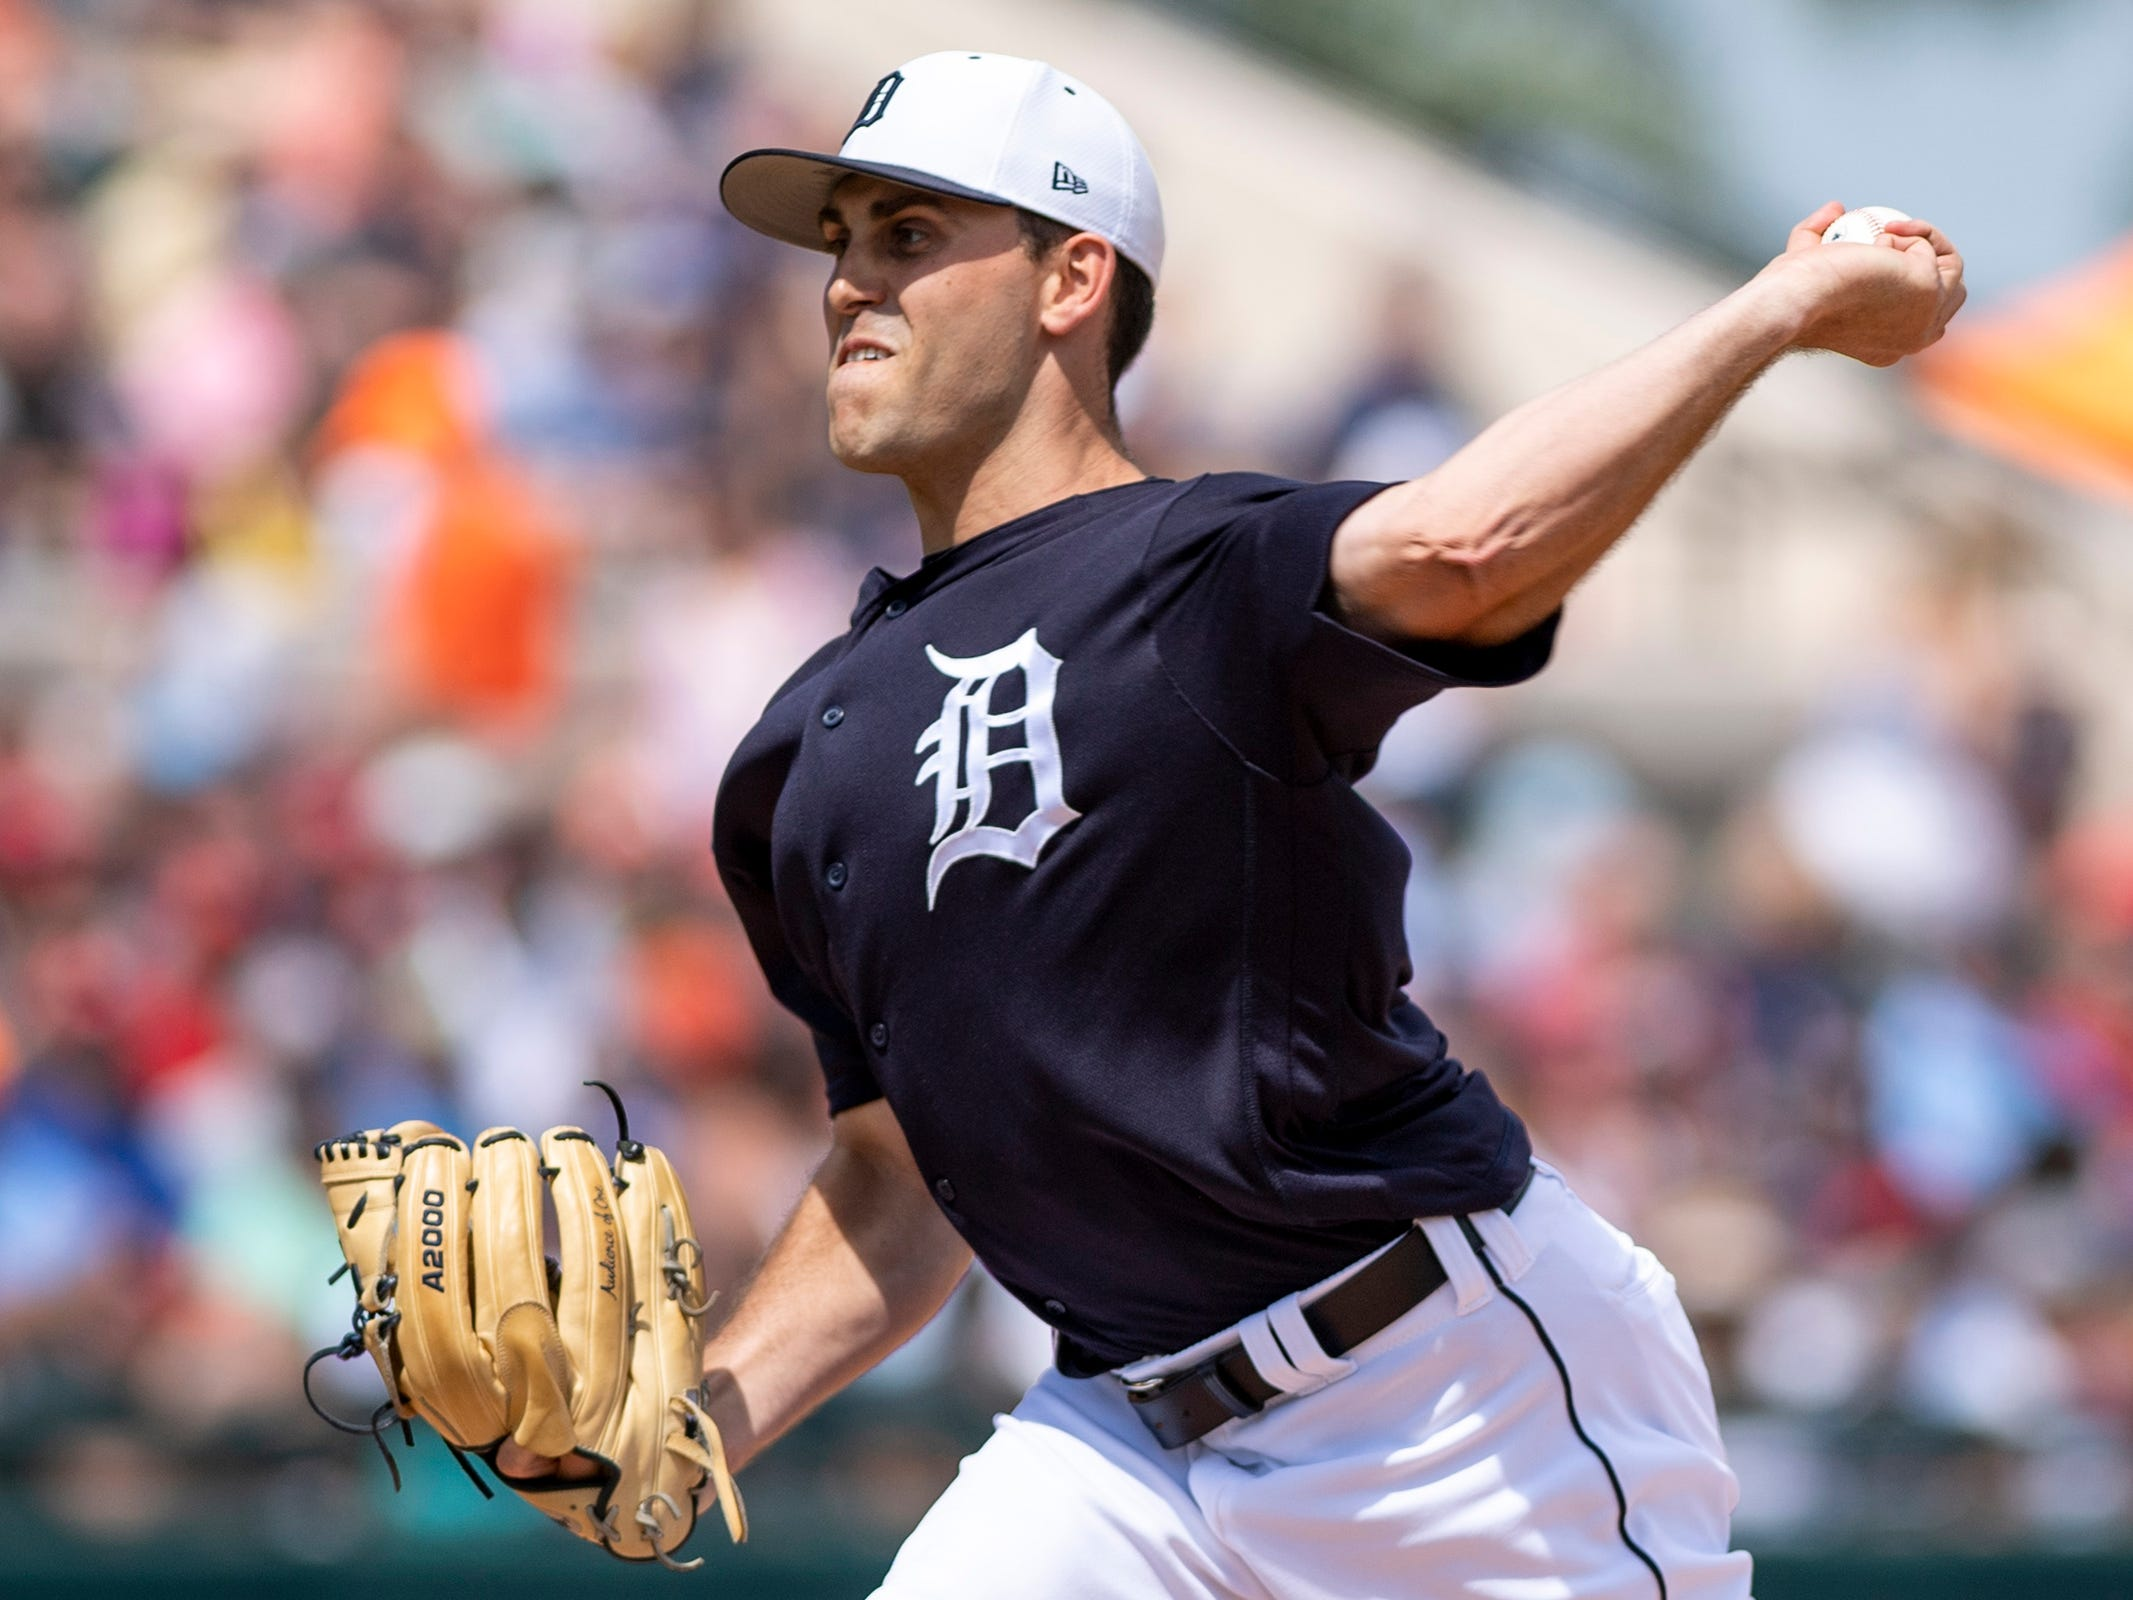 Detroit Tigers pitcher Matthew Boyd throws a pitch during the third inning against the Boston Red Sox at Joker Marchant Stadium in Lakeland, Fla. on March 14, 2019.